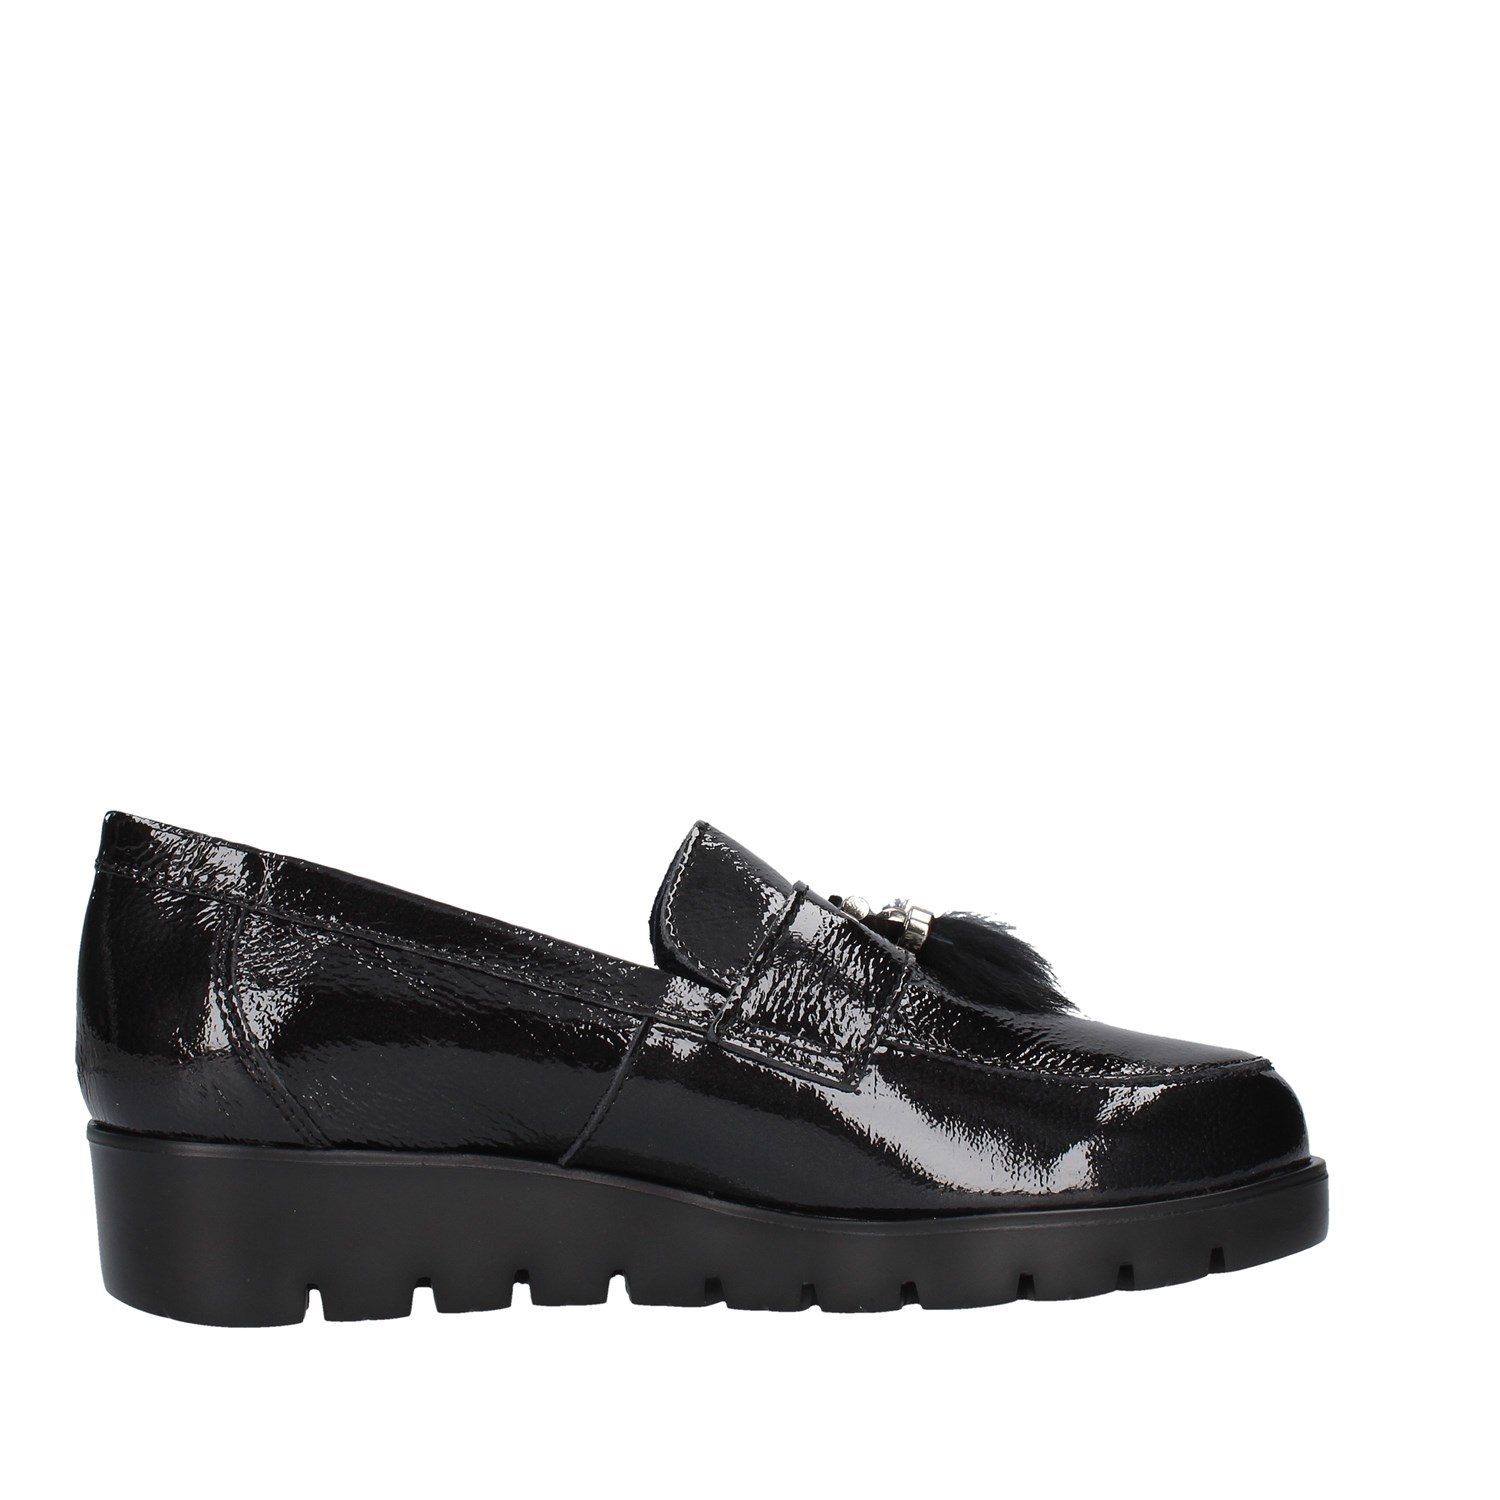 Callaghan Shoes Woman Loafers BLACK 89853